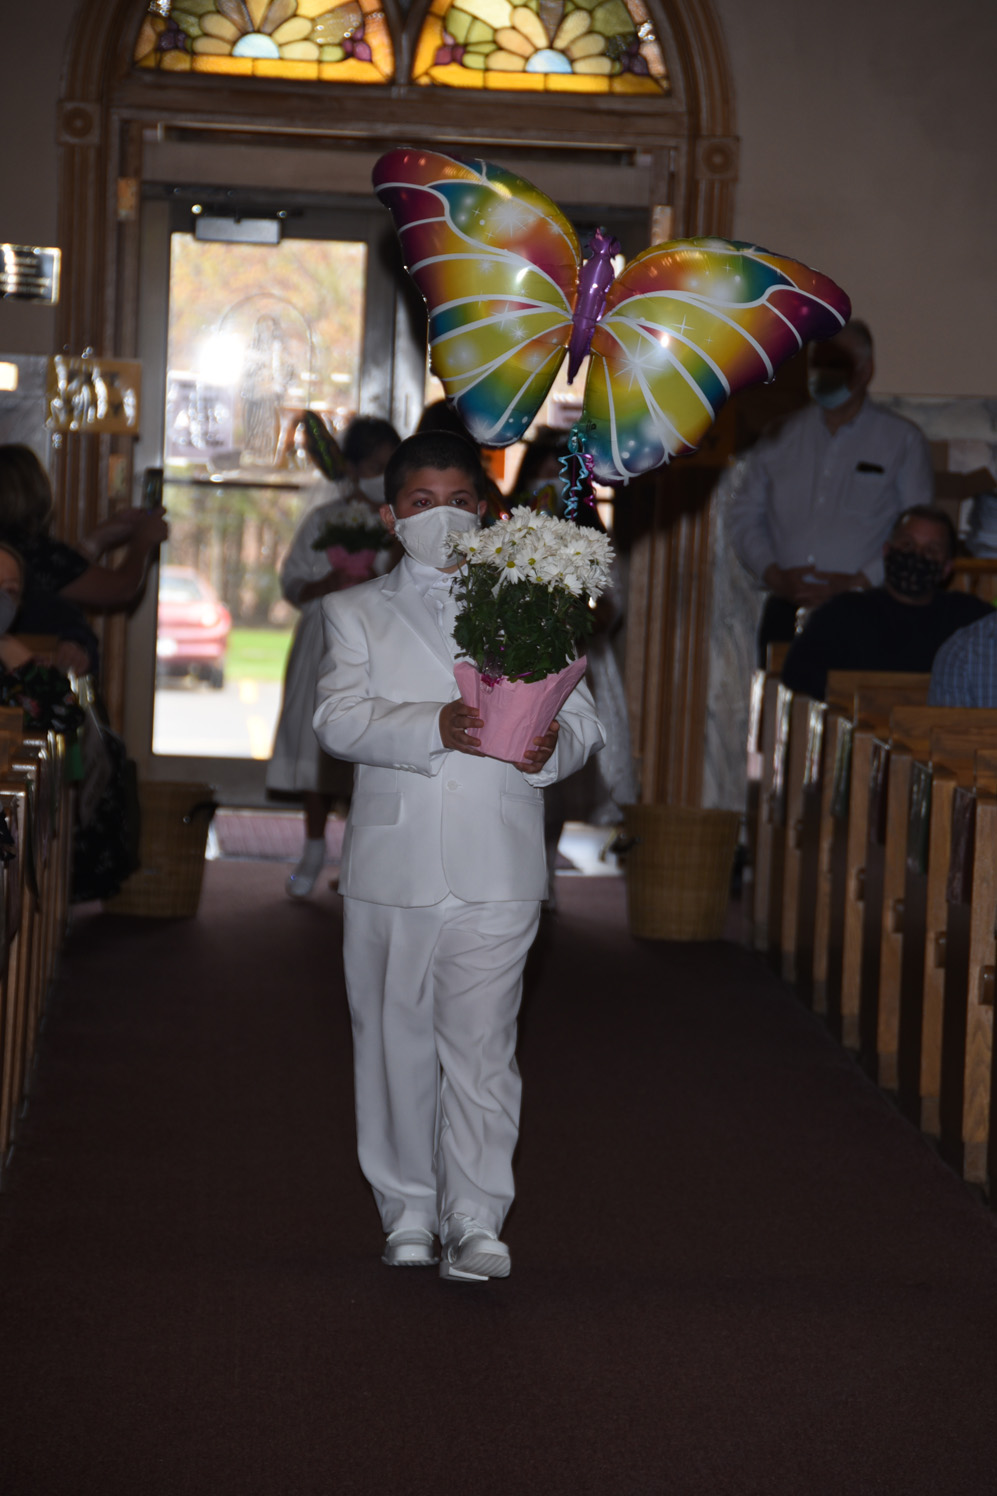 FIRST-COMMUNION-MAY-2-2021-1001001075